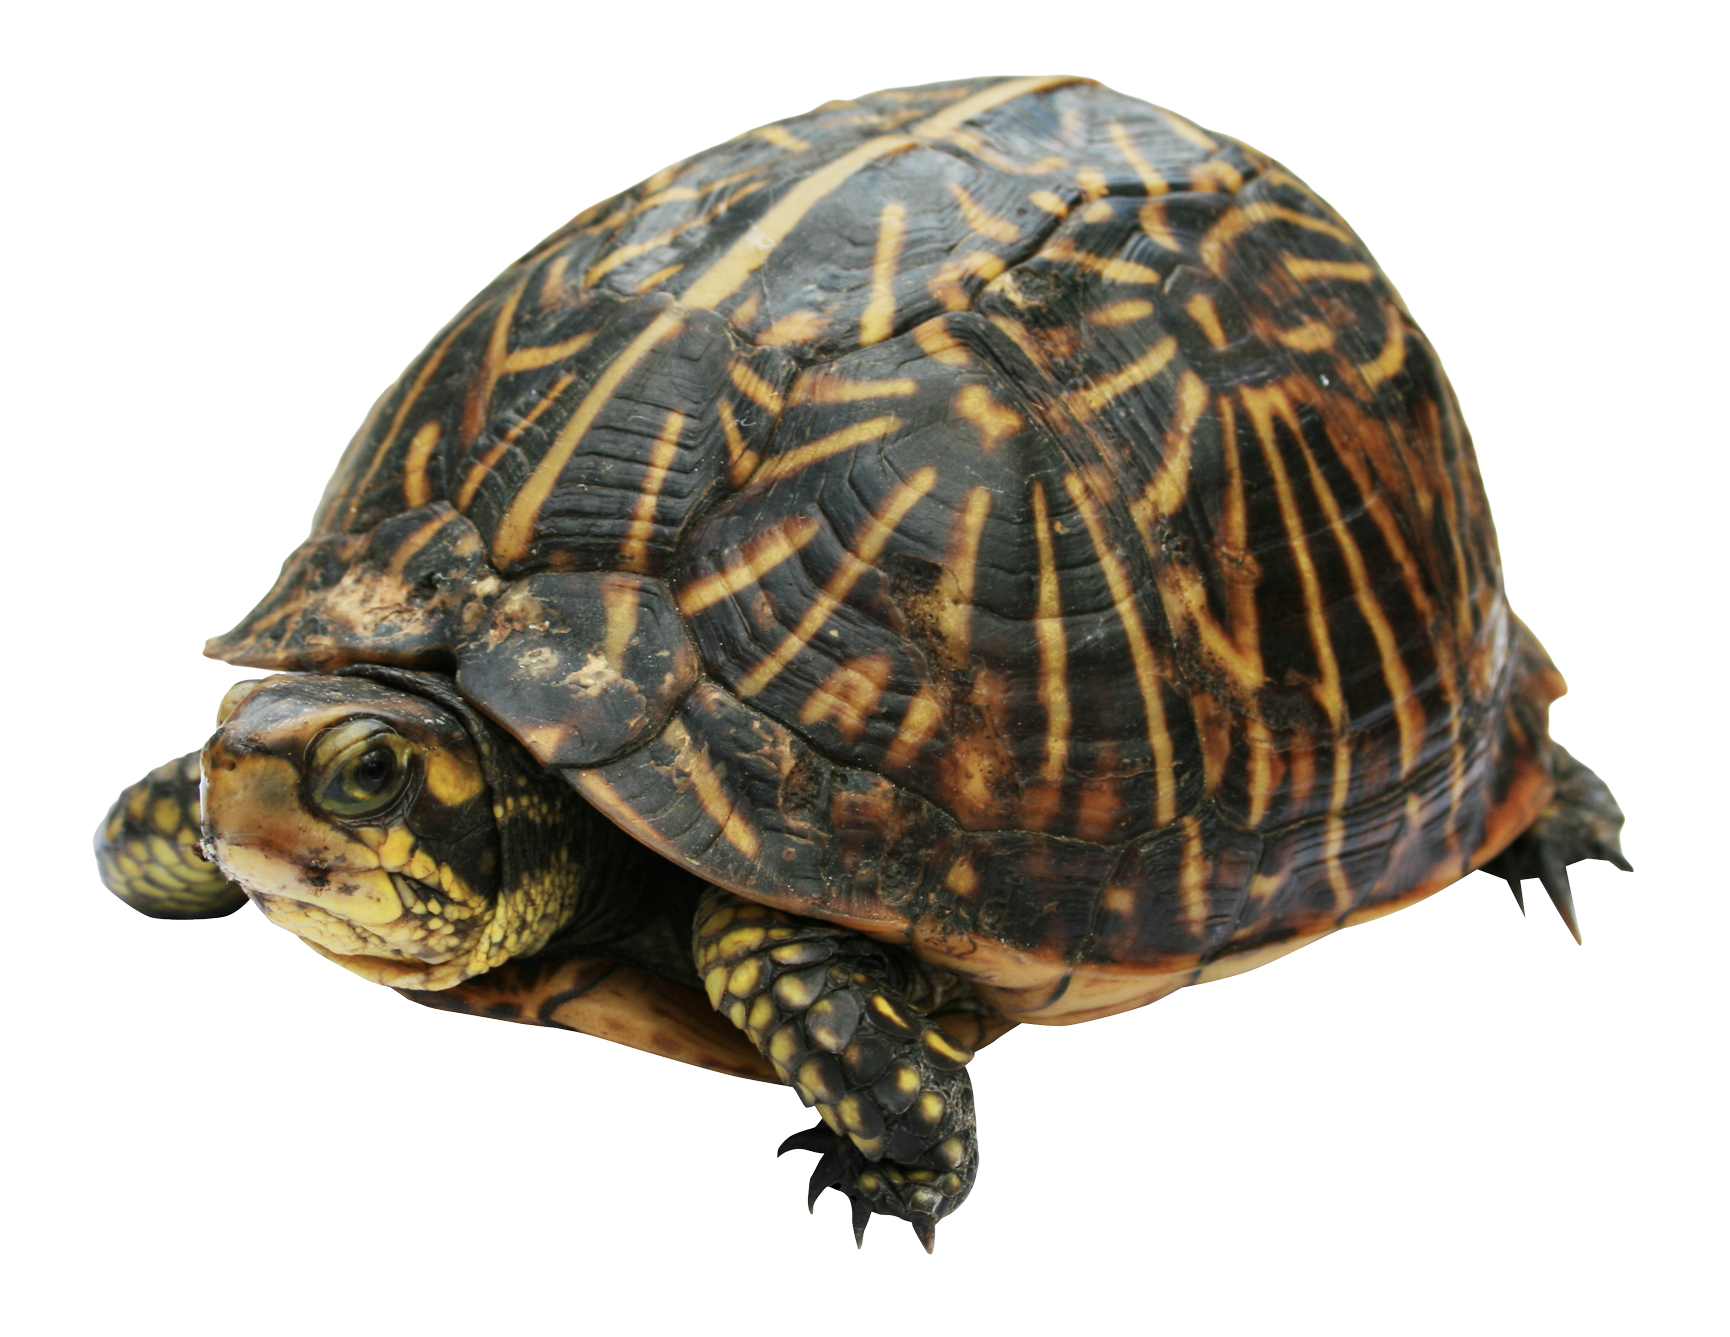 Clipart turtle box turtle. Png image purepng free